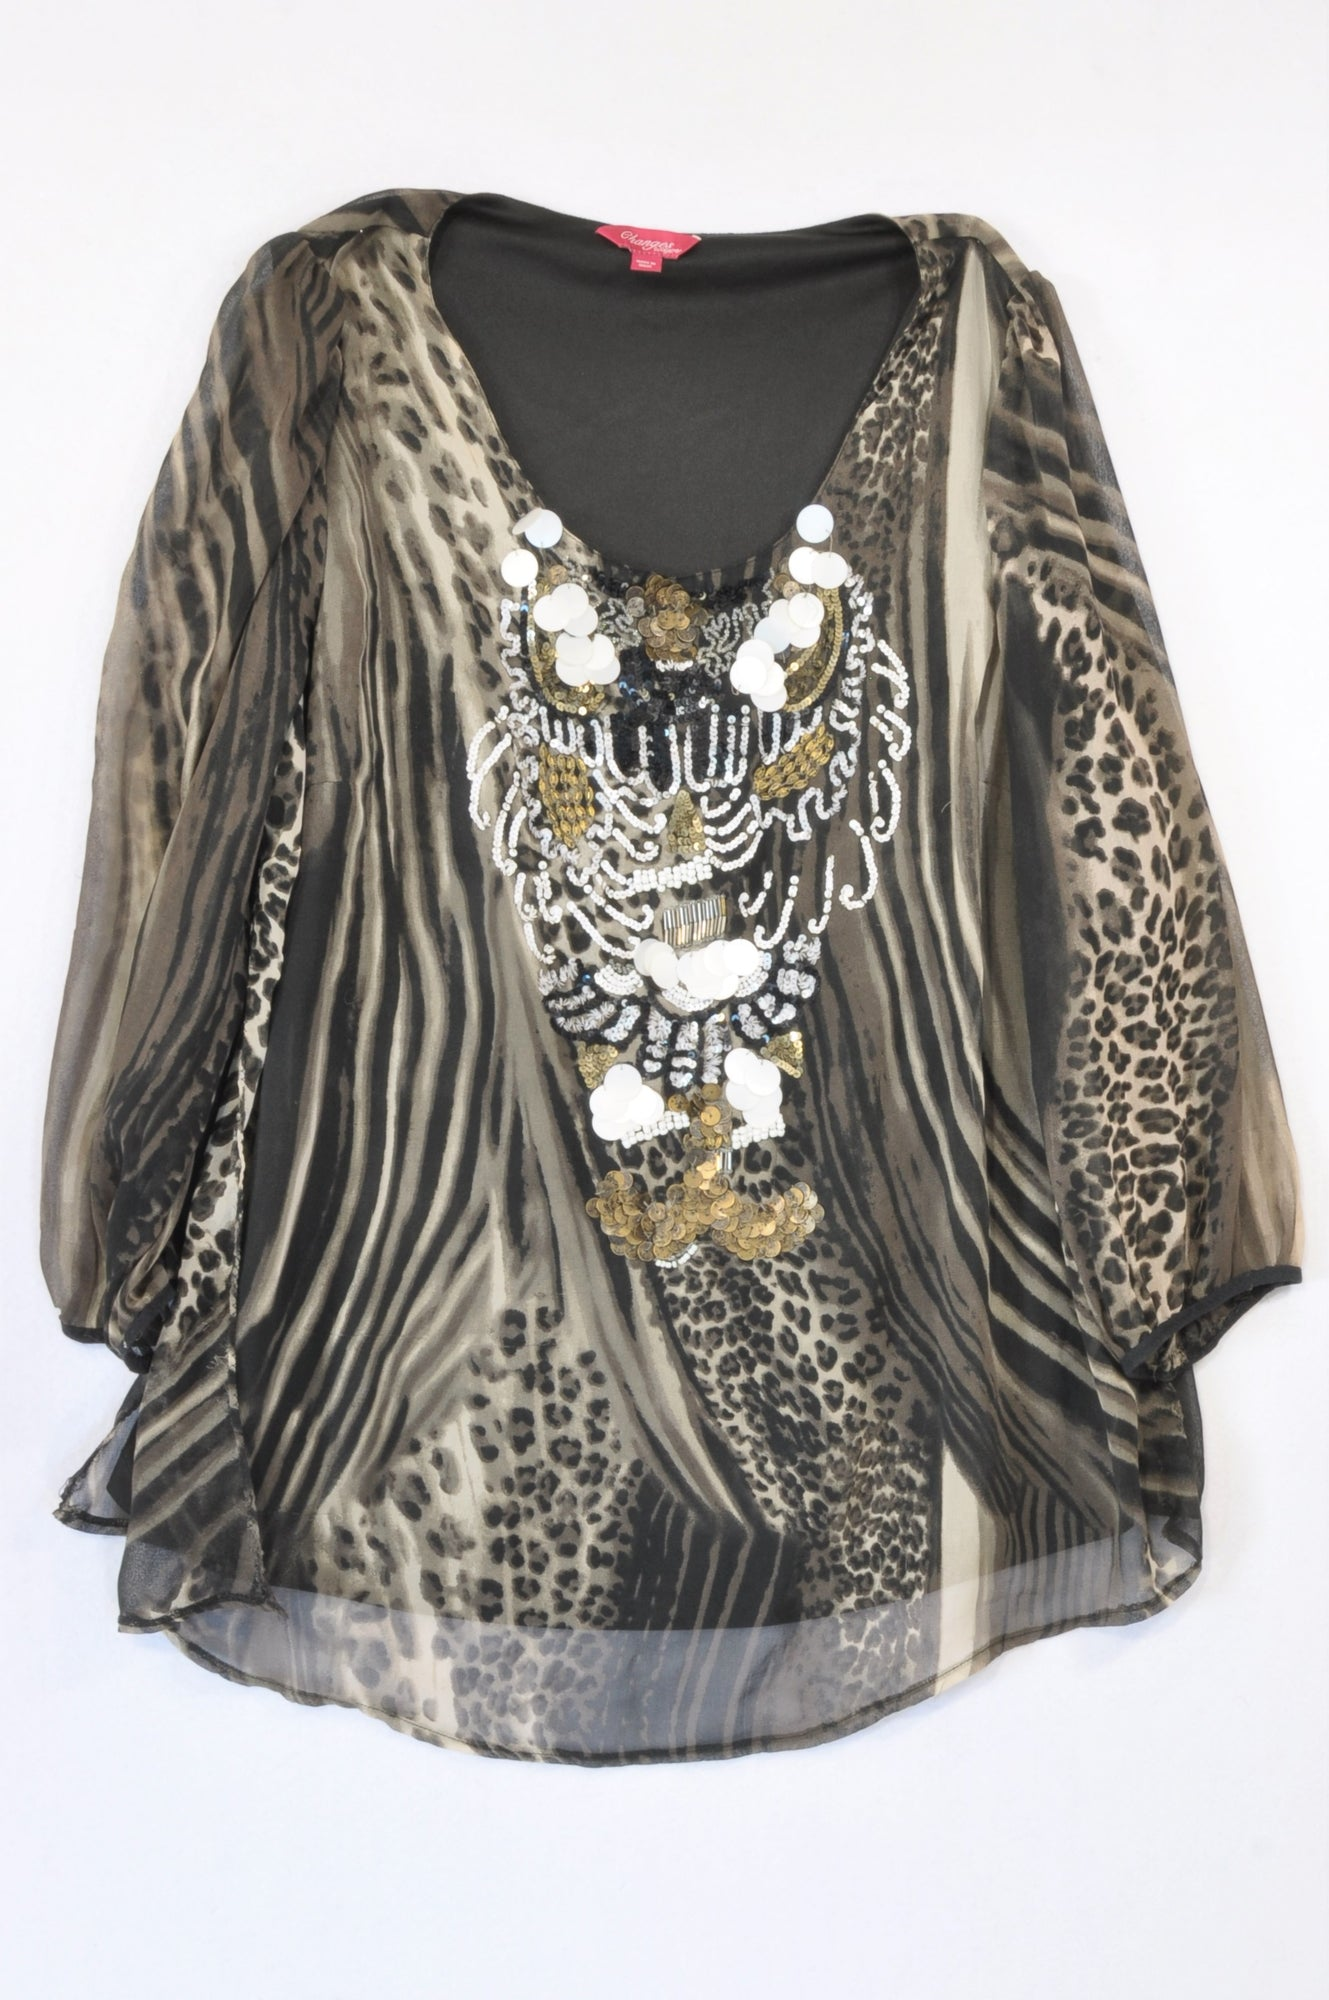 Changes by Together Animal Print Embellished Beaded Blouse Women Size 22